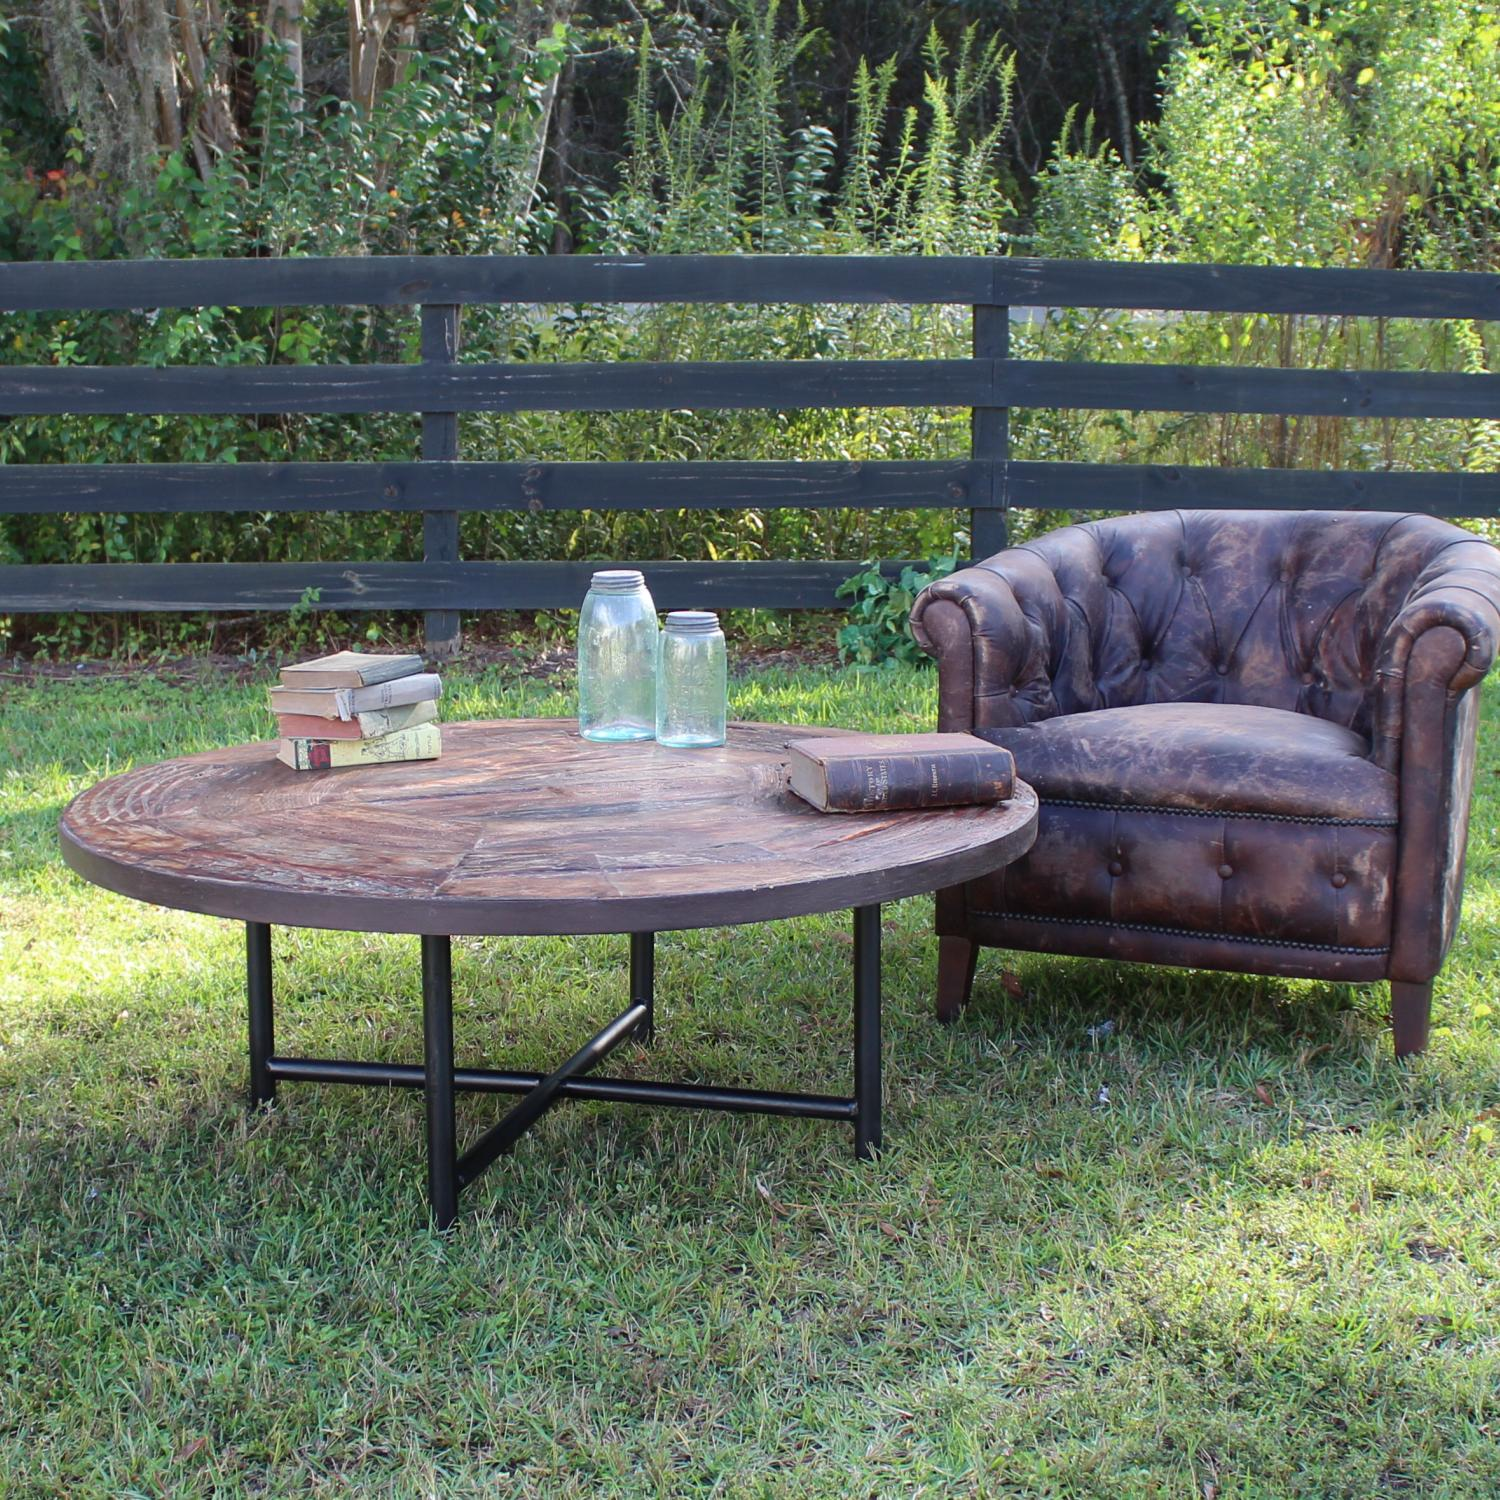 Round Coffee Table From Recycled Vintage Wood Wagon Wheel Designer Choice The Kings Bay